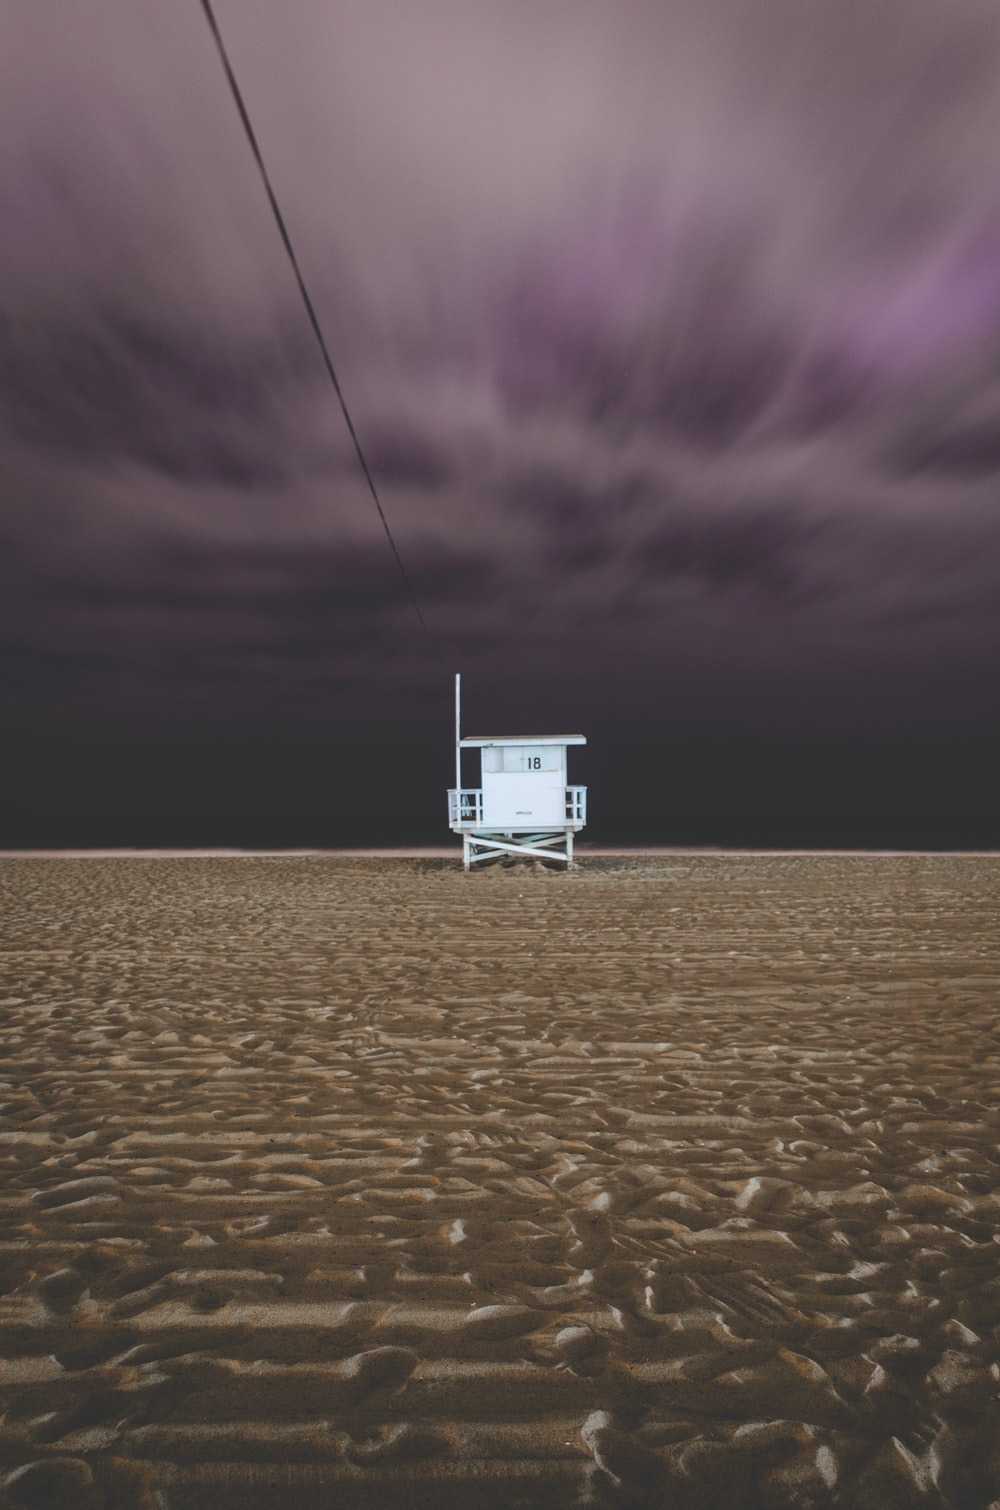 surrealism photo of white house surrounded by sand